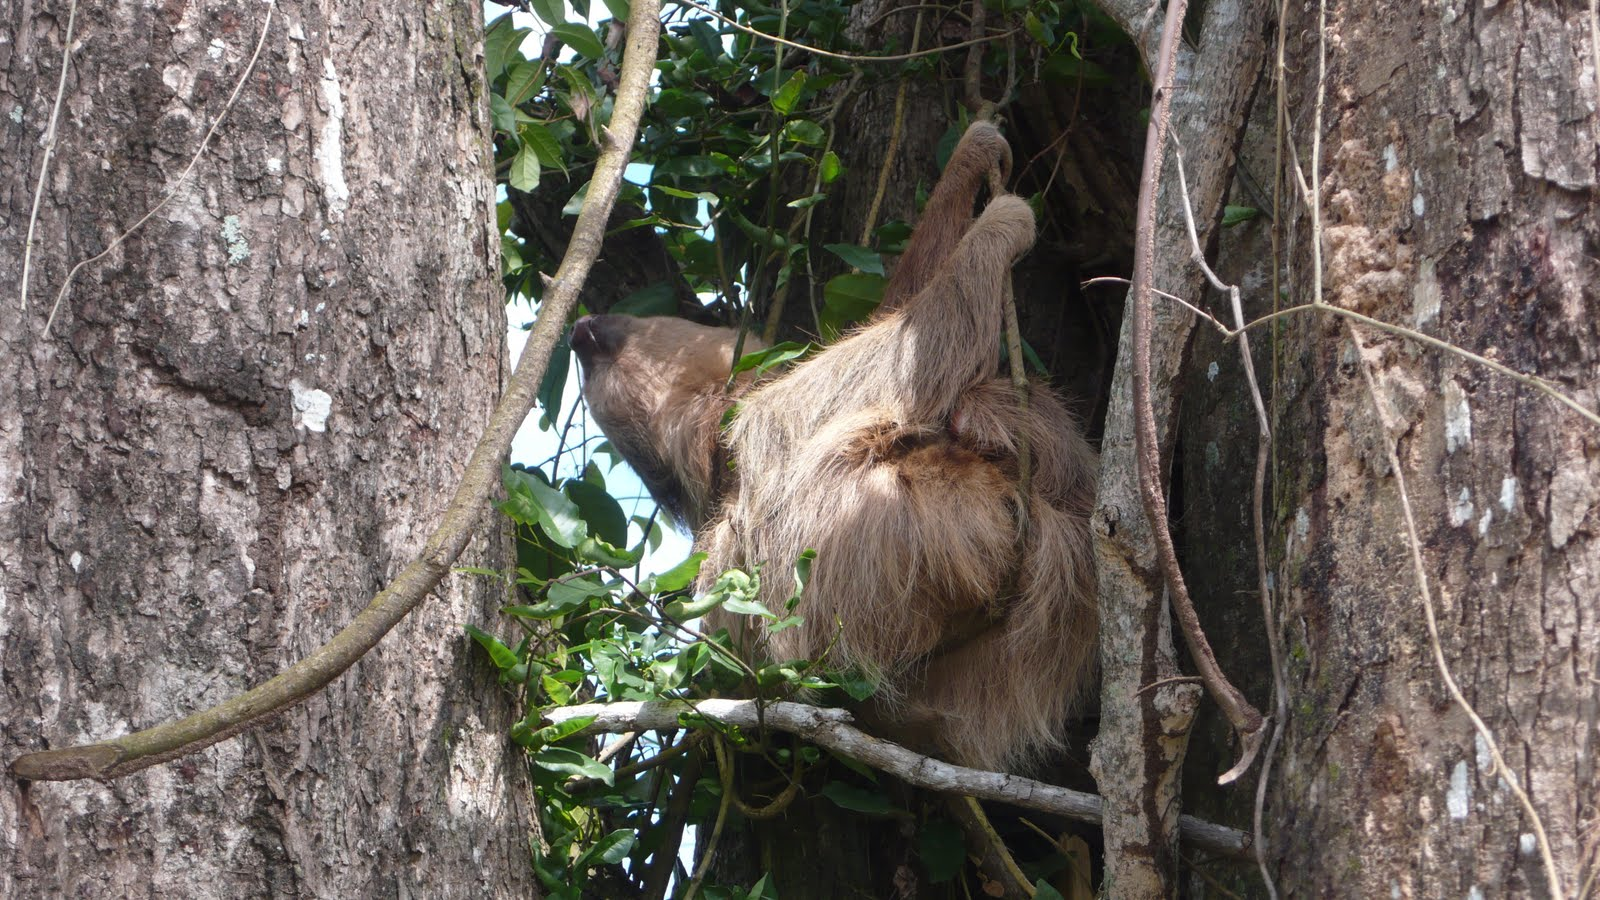 our resident sloth - Patsy